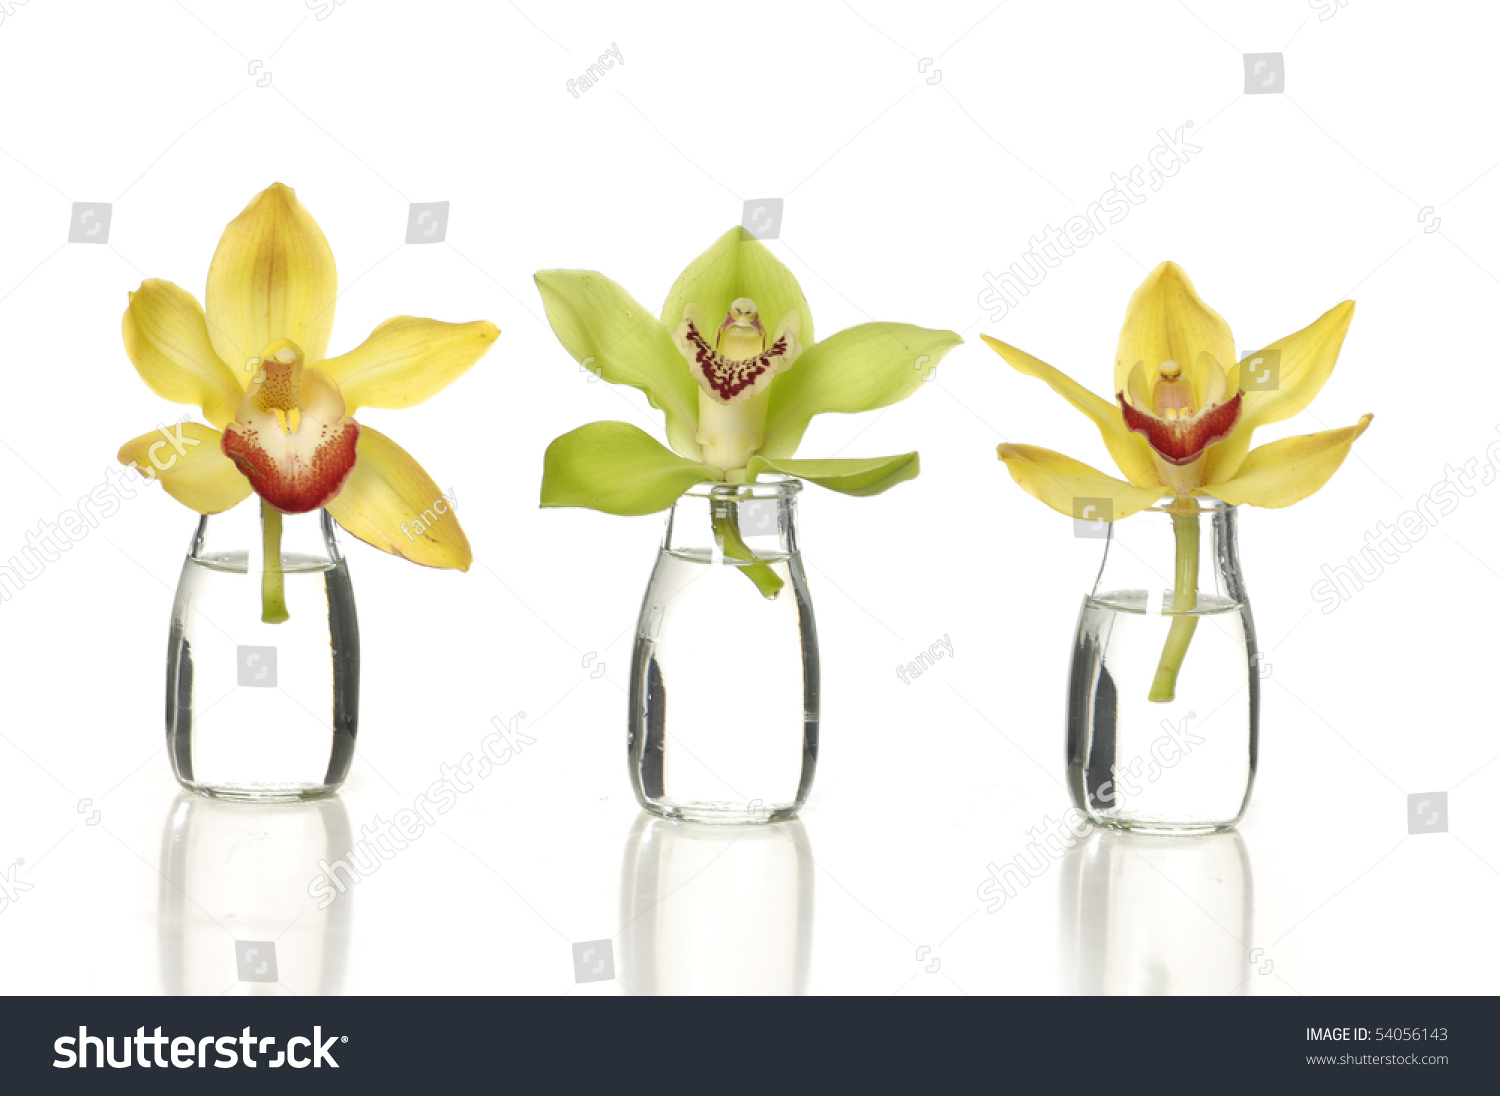 Beauty orchids small glass vases stock photo 54056143 shutterstock beauty orchids in small glass vases reviewsmspy